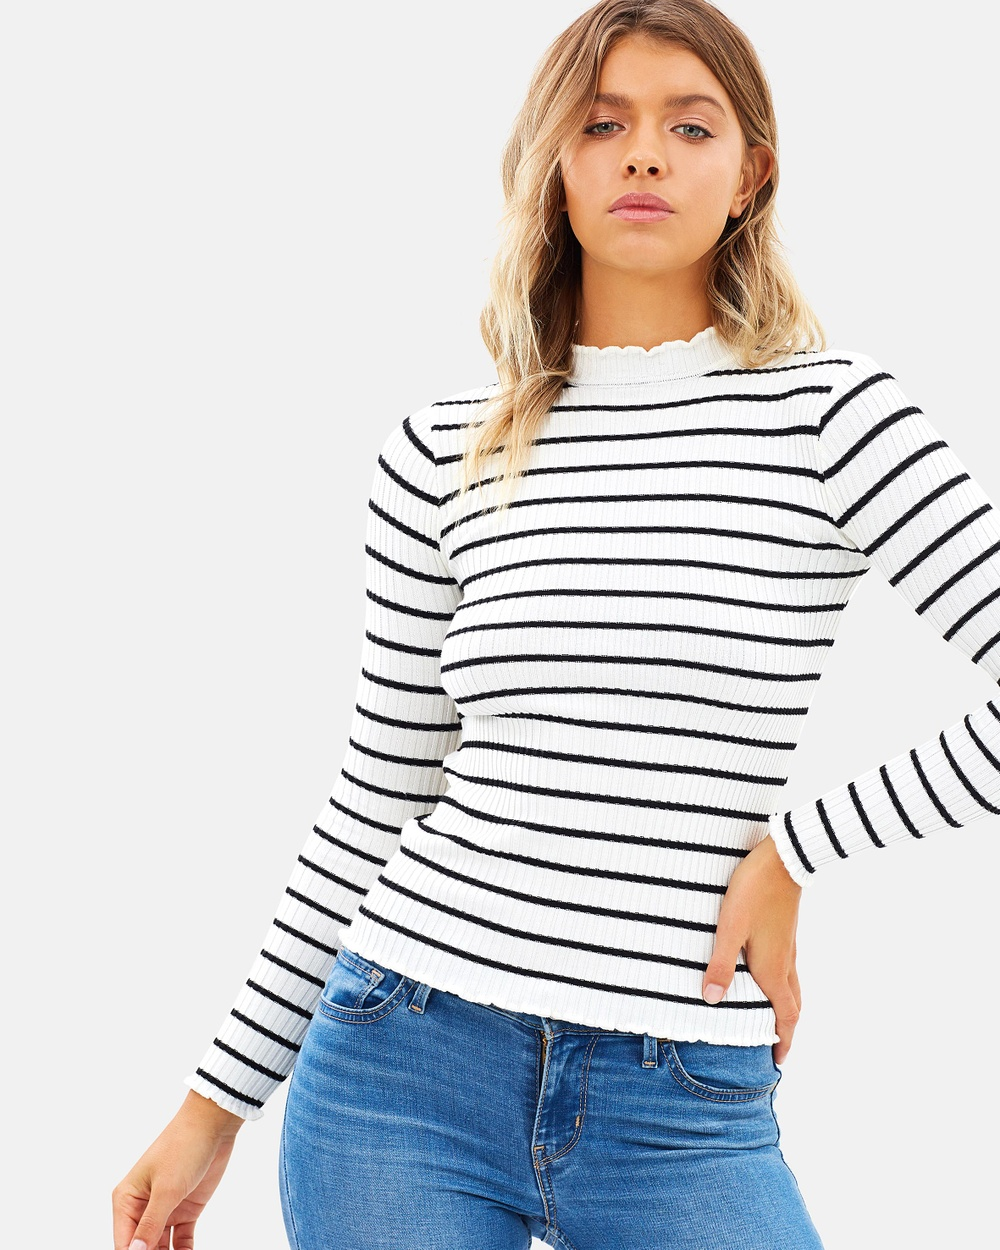 Atmos & Here ICONIC EXCLUSIVE Elise Ribbed Knit Top Tops Black & White Stripe ICONIC EXCLUSIVE Elise Ribbed Knit Top